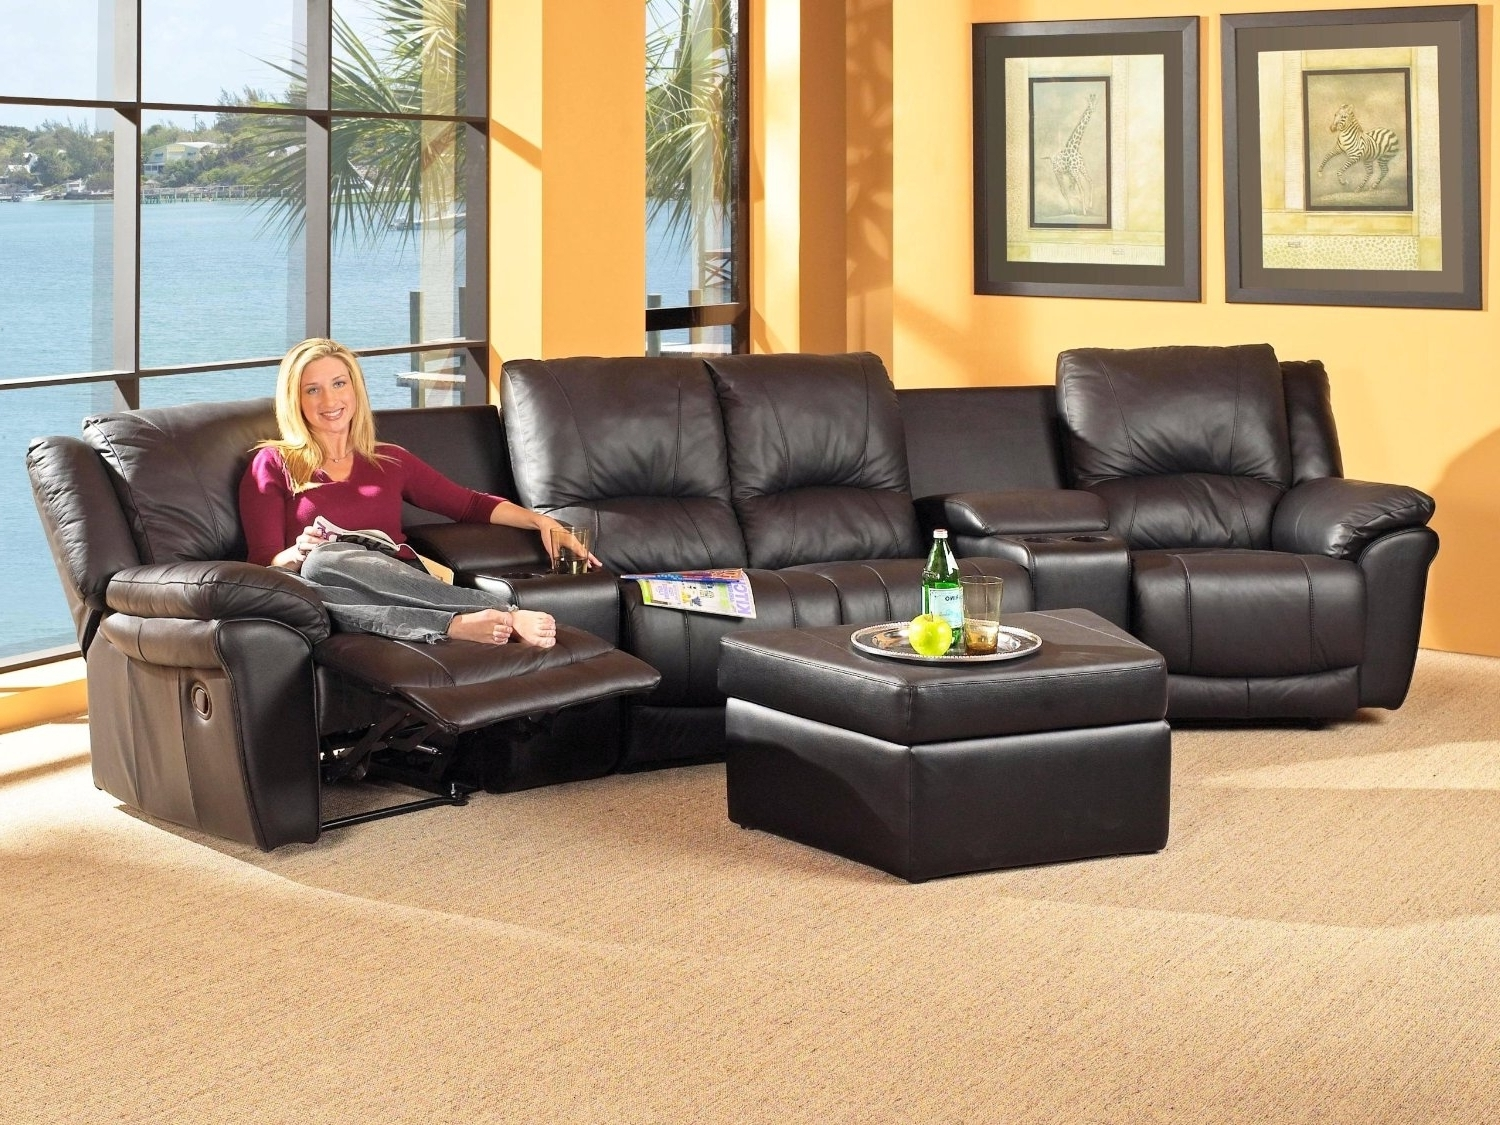 Collection Sectional Sofas Rochester Ny – Mediasupload For Most Current Rochester Ny Sectional Sofas (View 6 of 15)